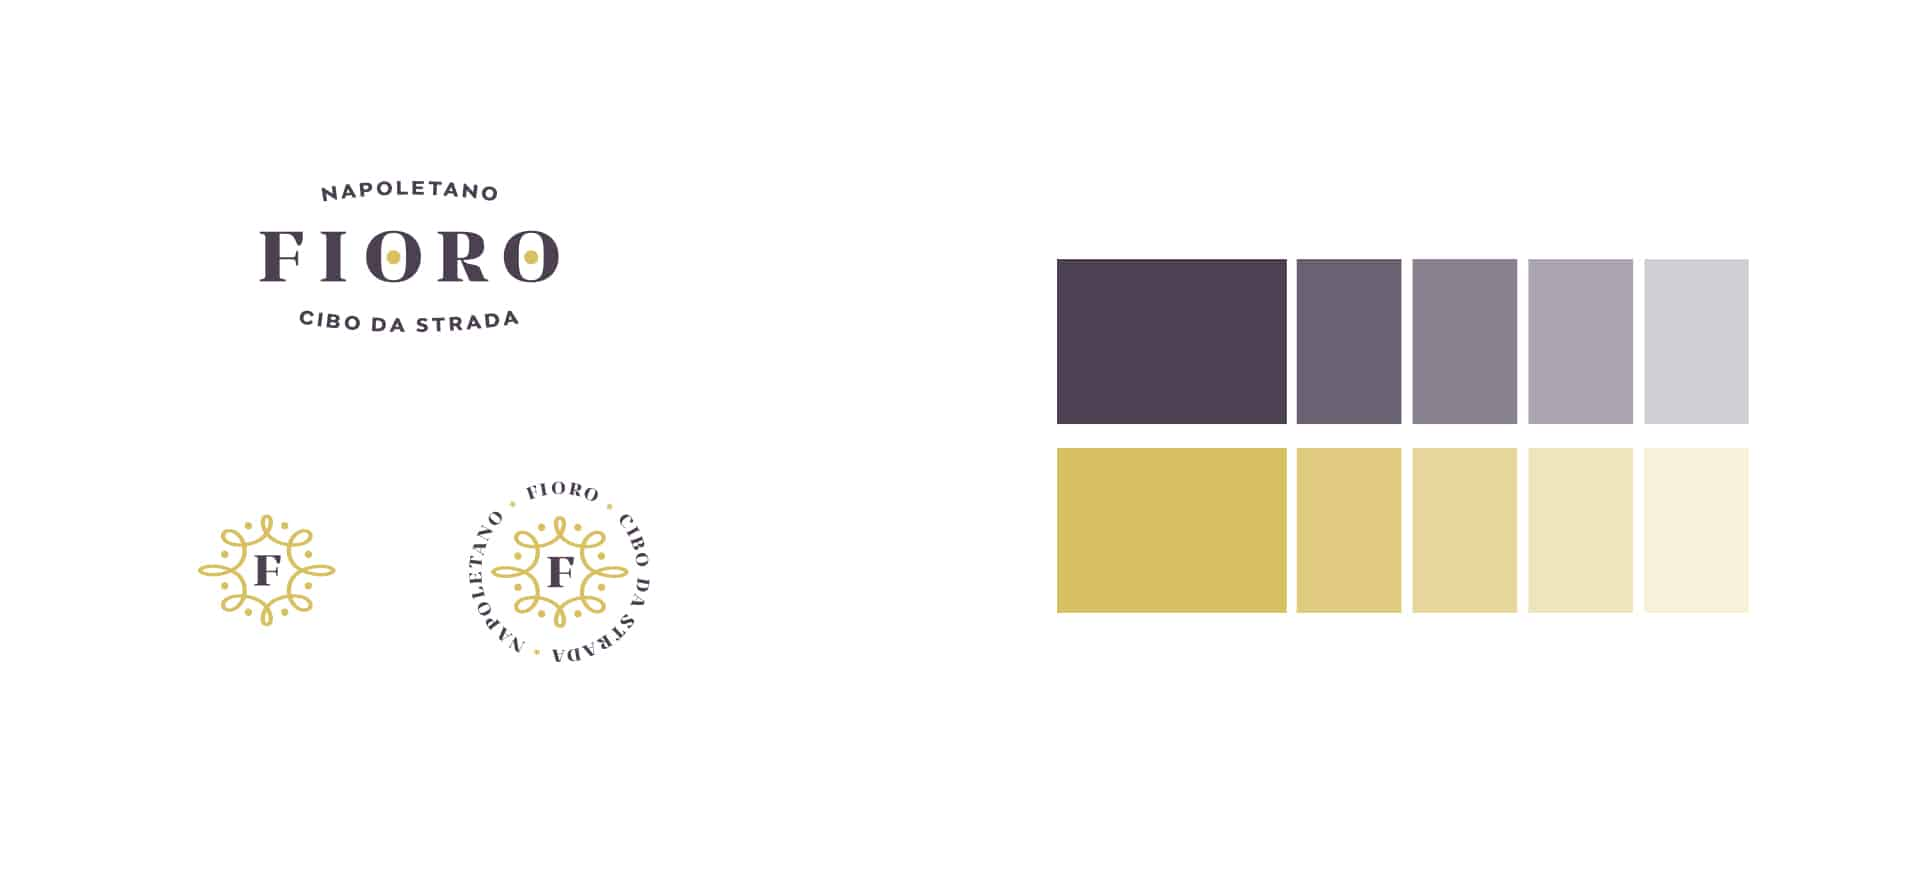 Fioro italian fast casual restaurant concept development and branding brand standards